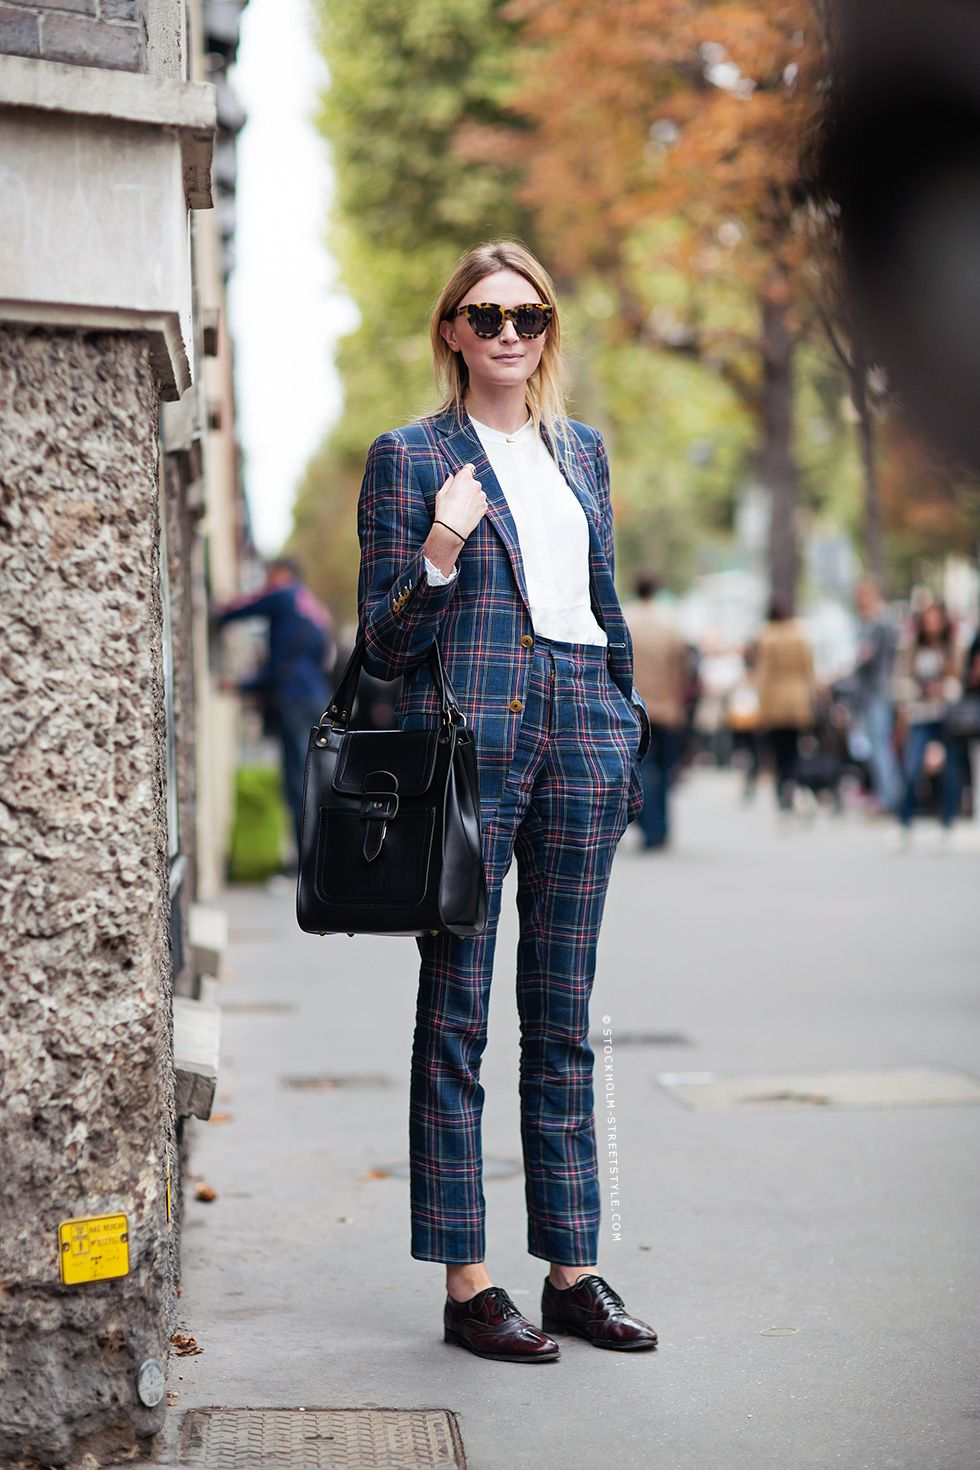 pictures 16 Stylish Checkered Outfits for The Perfect Back To School Style